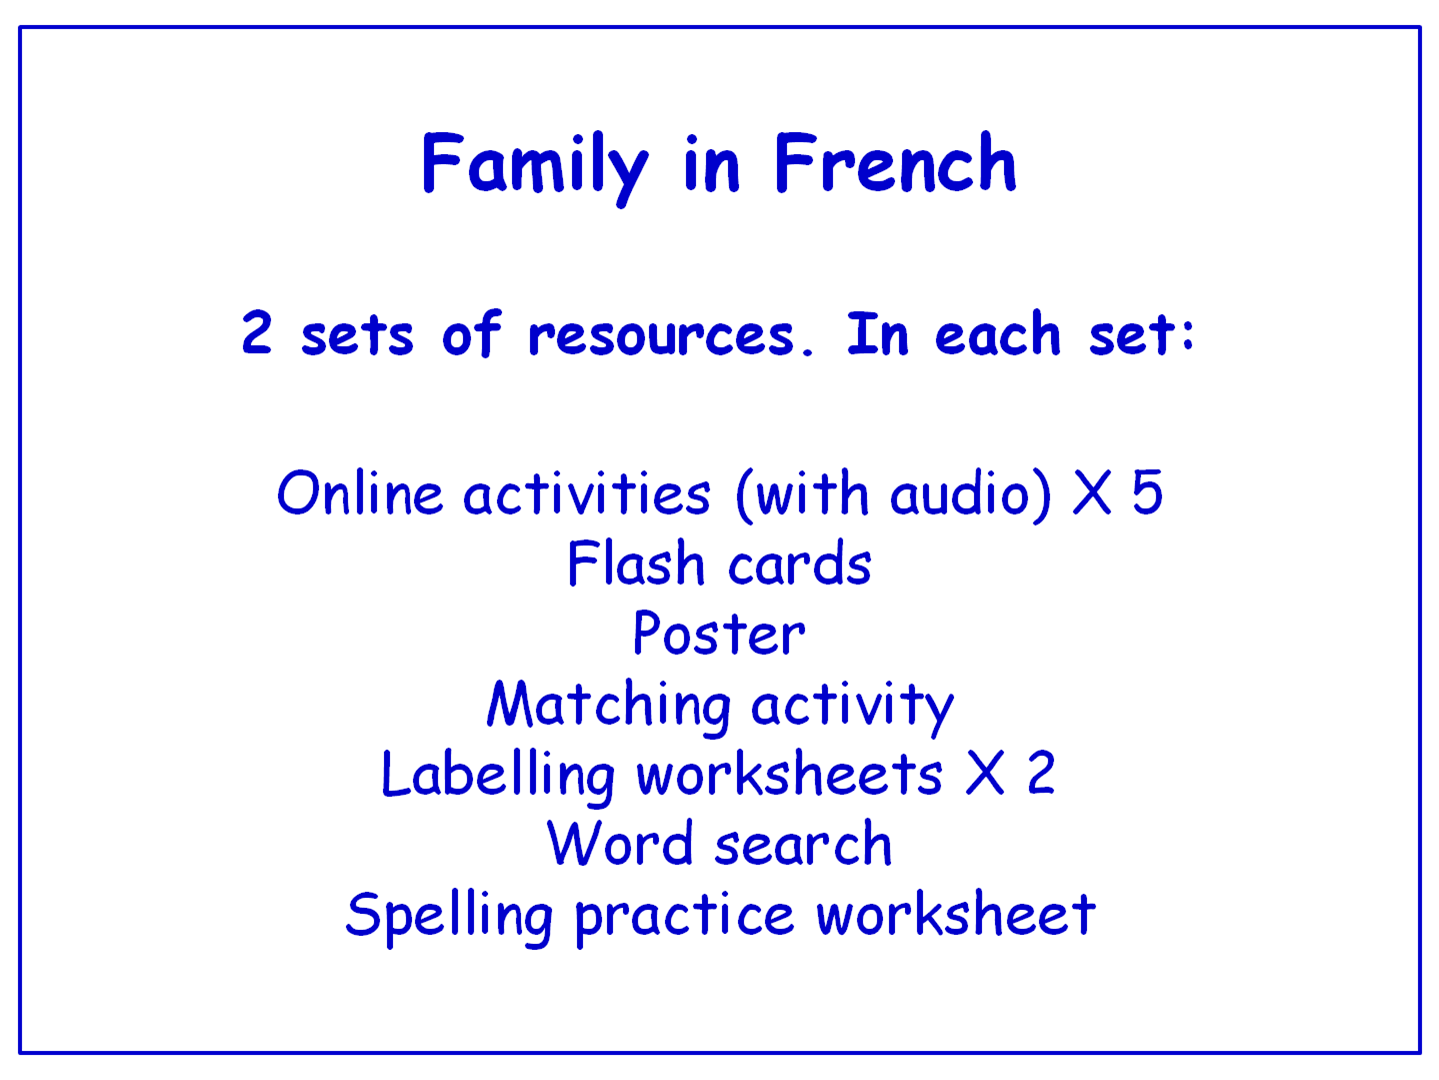 Family in French  Worksheets, Games, Activities and Flash Cards (with audio) Bundle (3 sets)